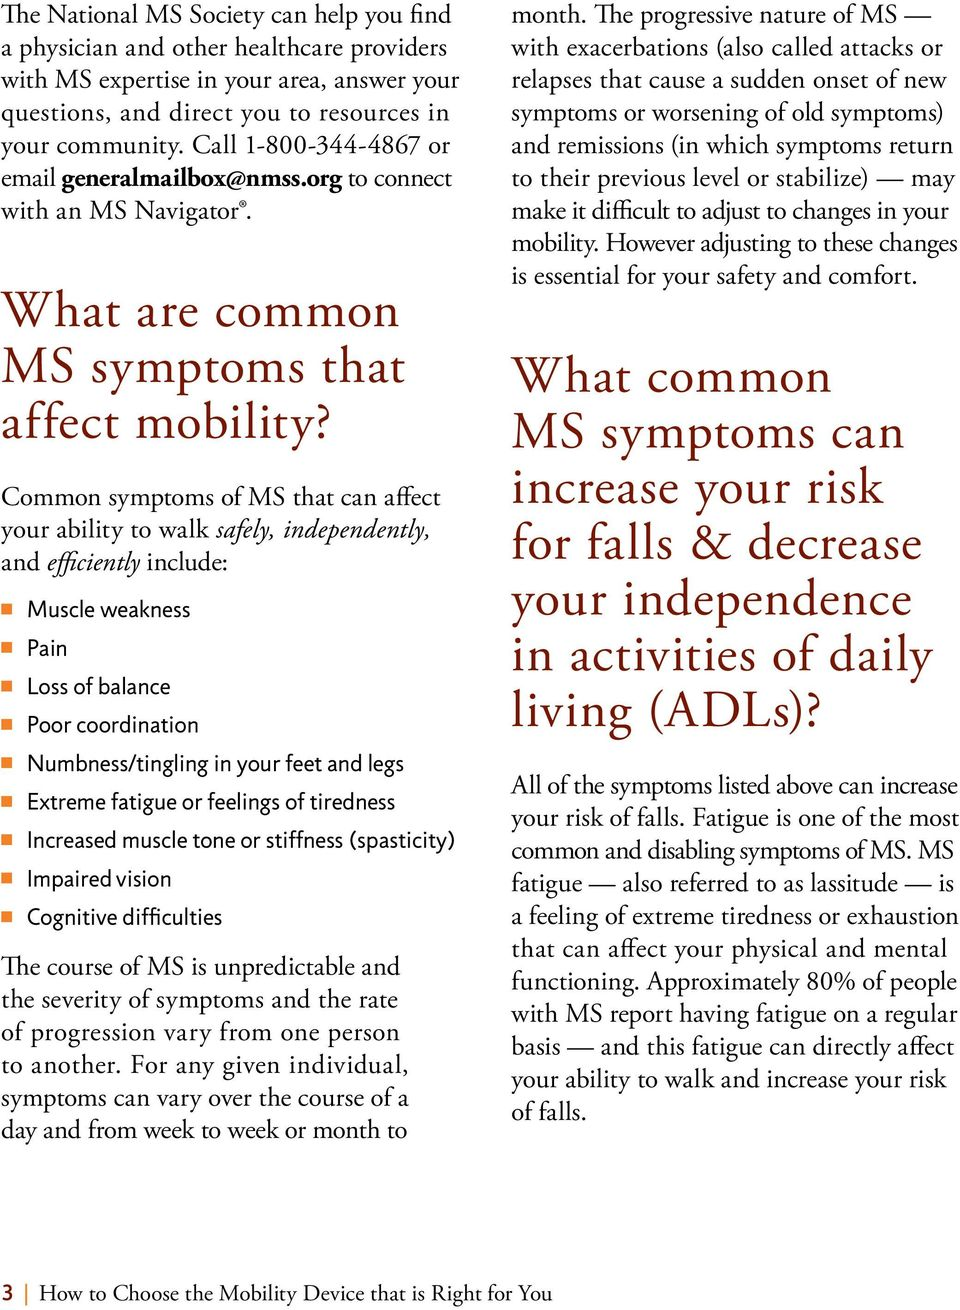 Common symptoms of MS that can affect your ability to walk safely, independently, and efficiently include: n Muscle weakness n Pain n Loss of balance n Poor coordination n Numbness/tingling in your